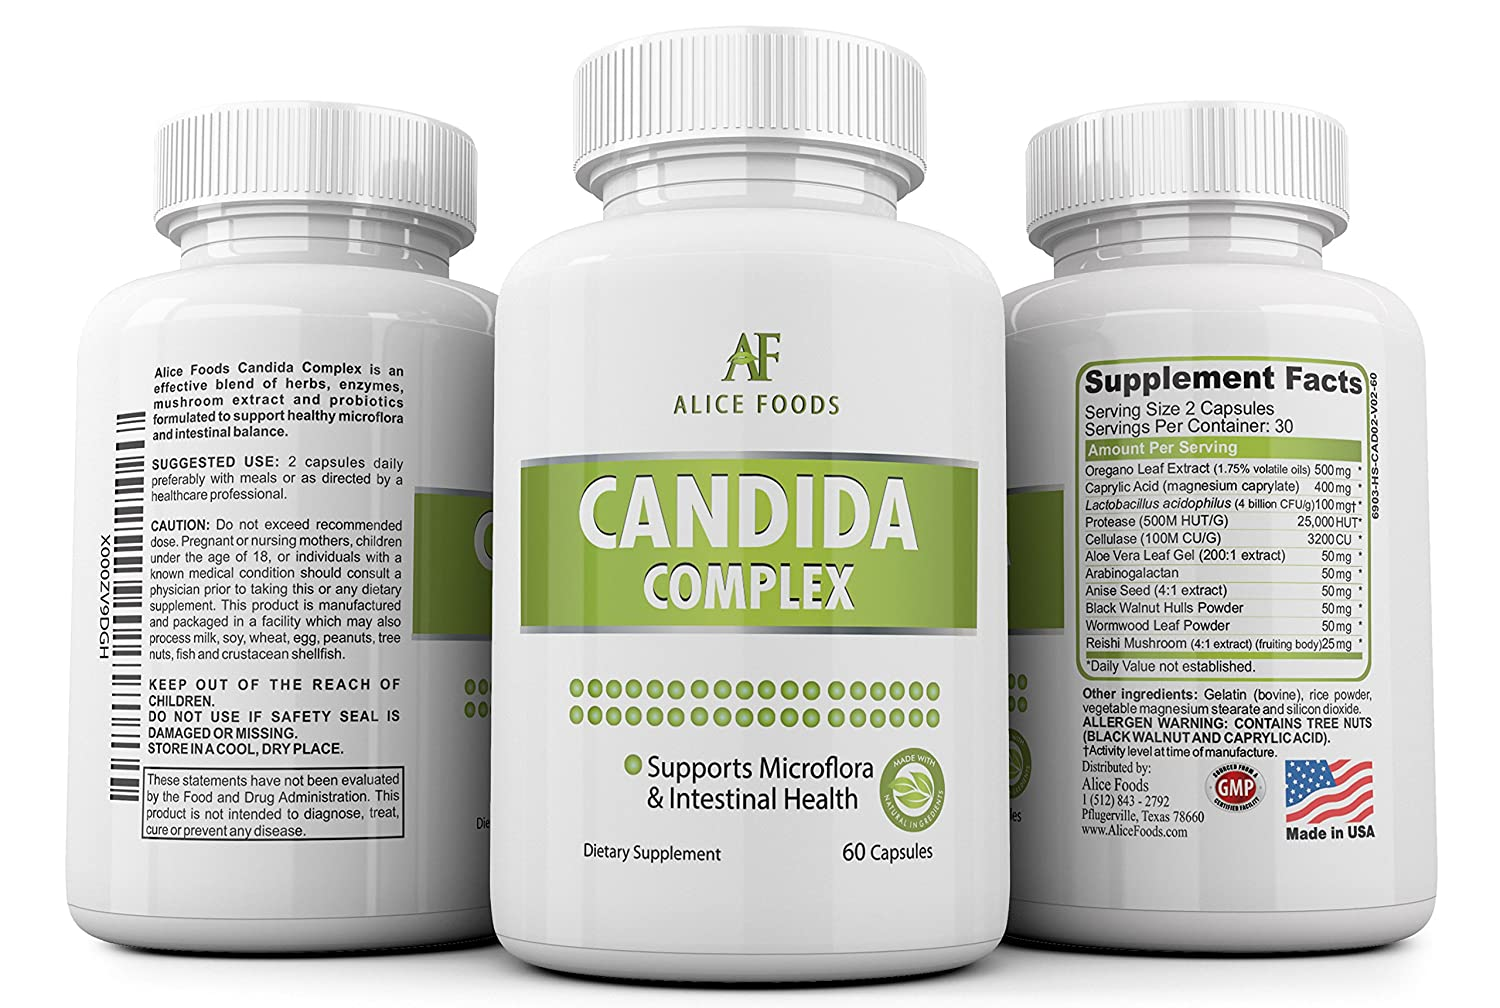 Candida probiotic herbal store buy - Amazon Com Premium Candida Cleanse Complex For Men Women Fights Candida Yeast Infection Overgrowth Natural Detox Supplement With Antifungal